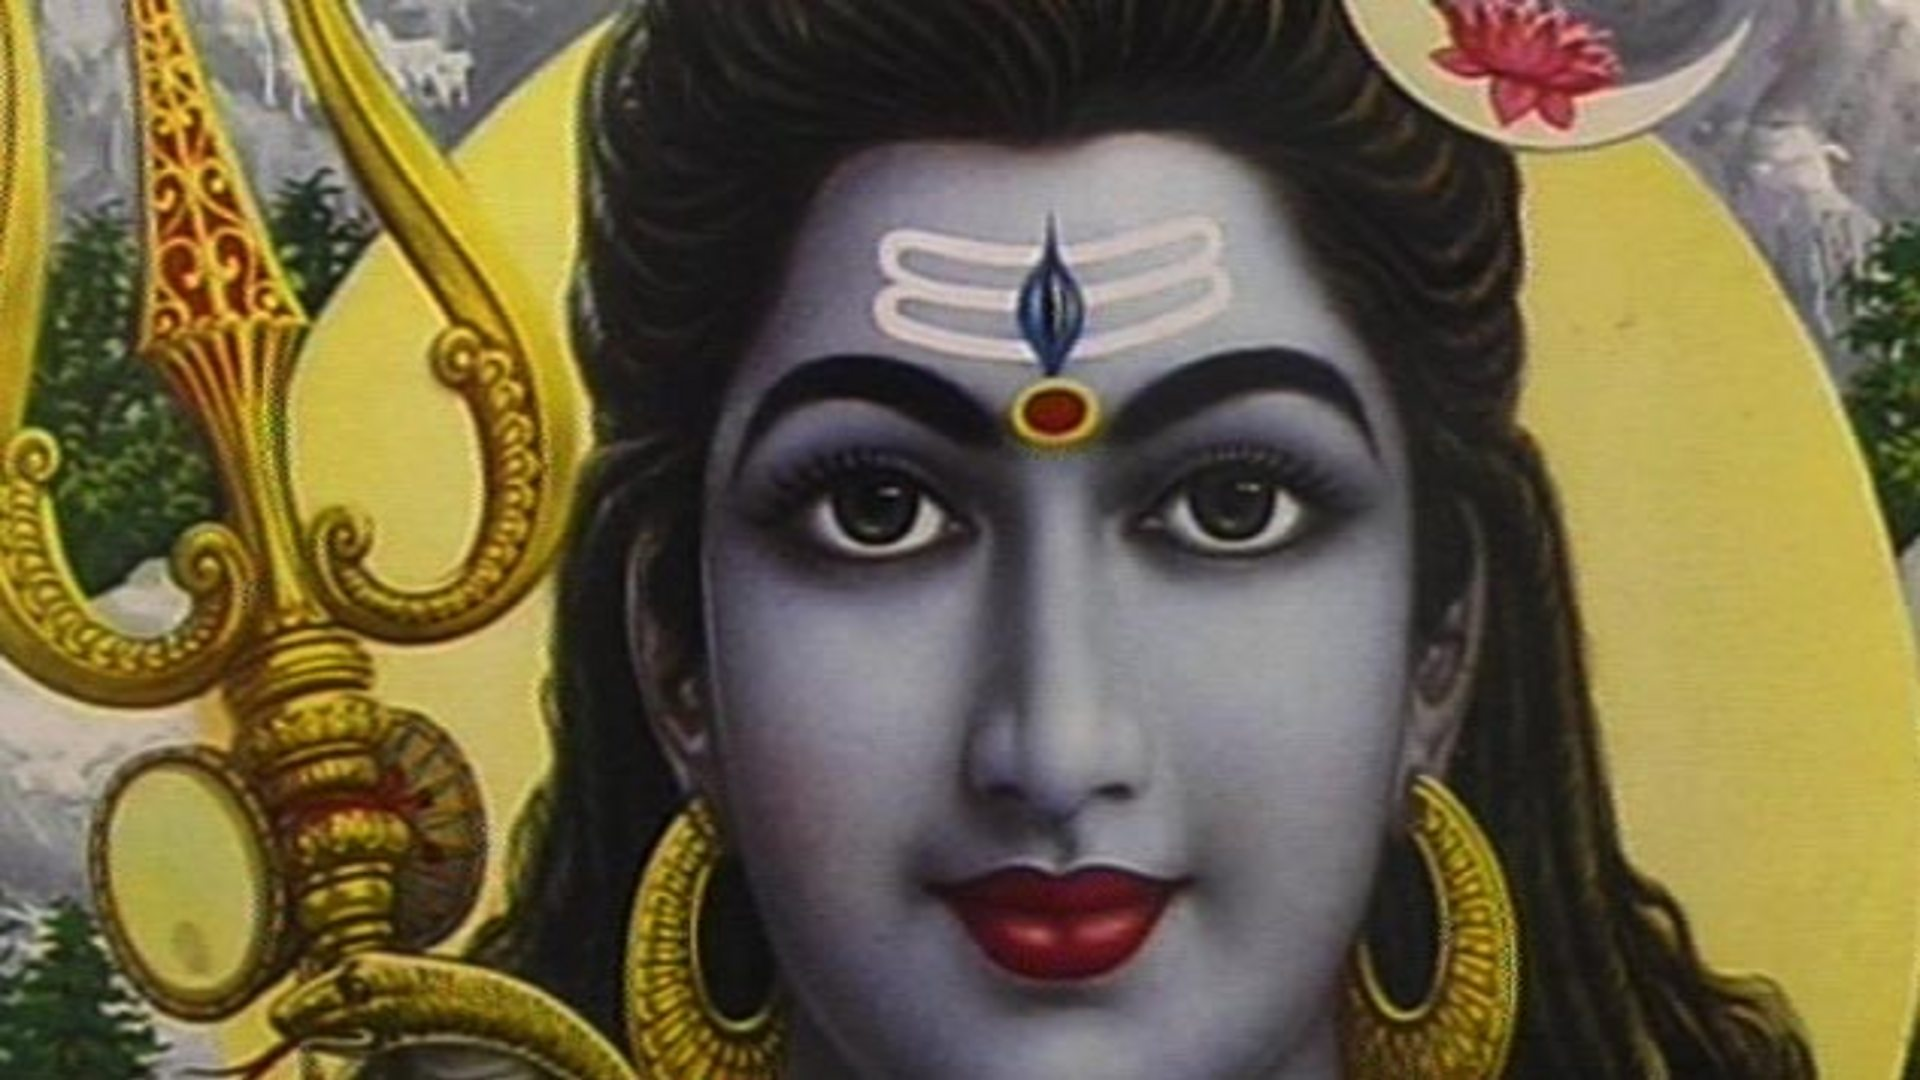 BBC Two - Belief File, Hinduism: God, Hindu beliefs about God